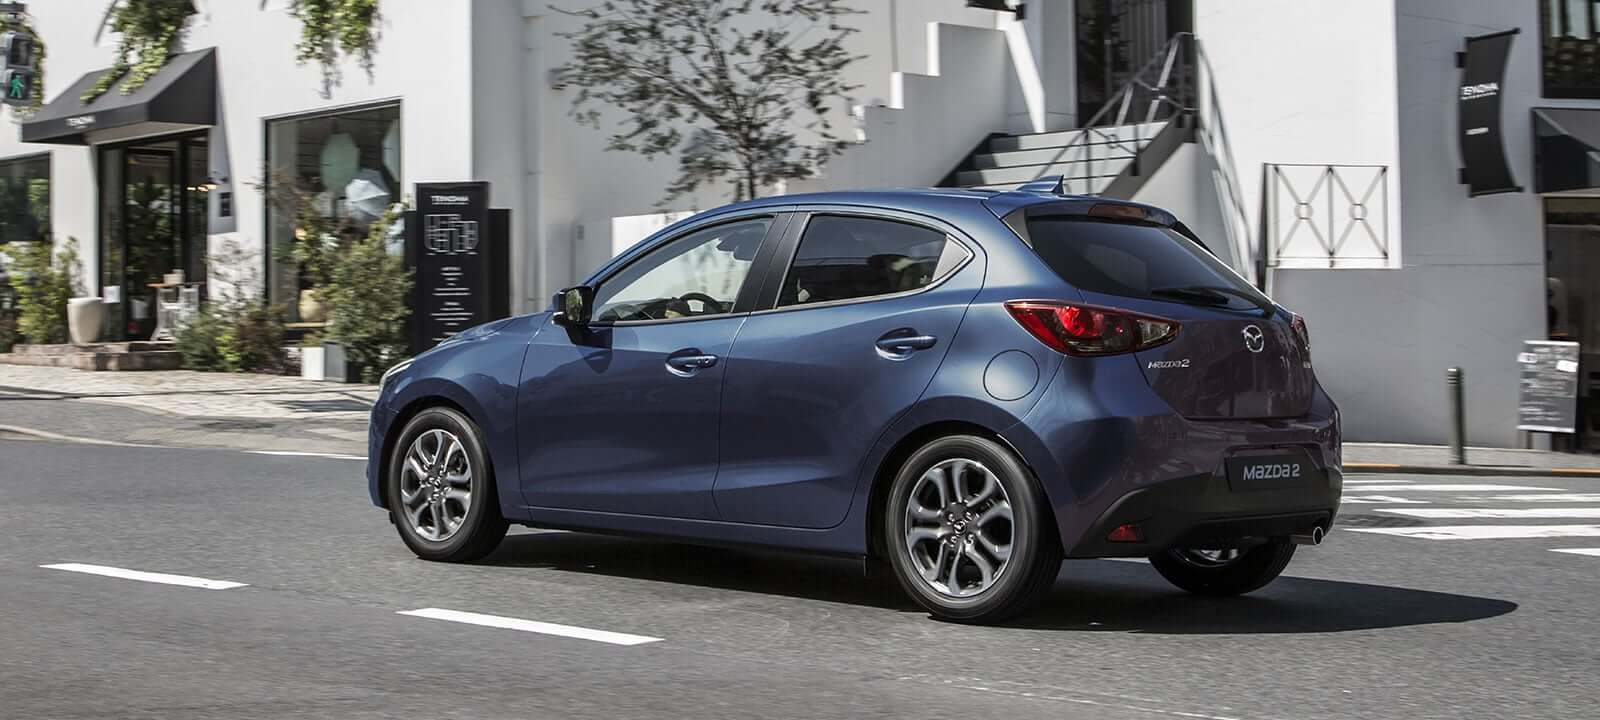 mazda new mazda2 sport 1 5l v 6mt elige tu nuevo auto. Black Bedroom Furniture Sets. Home Design Ideas